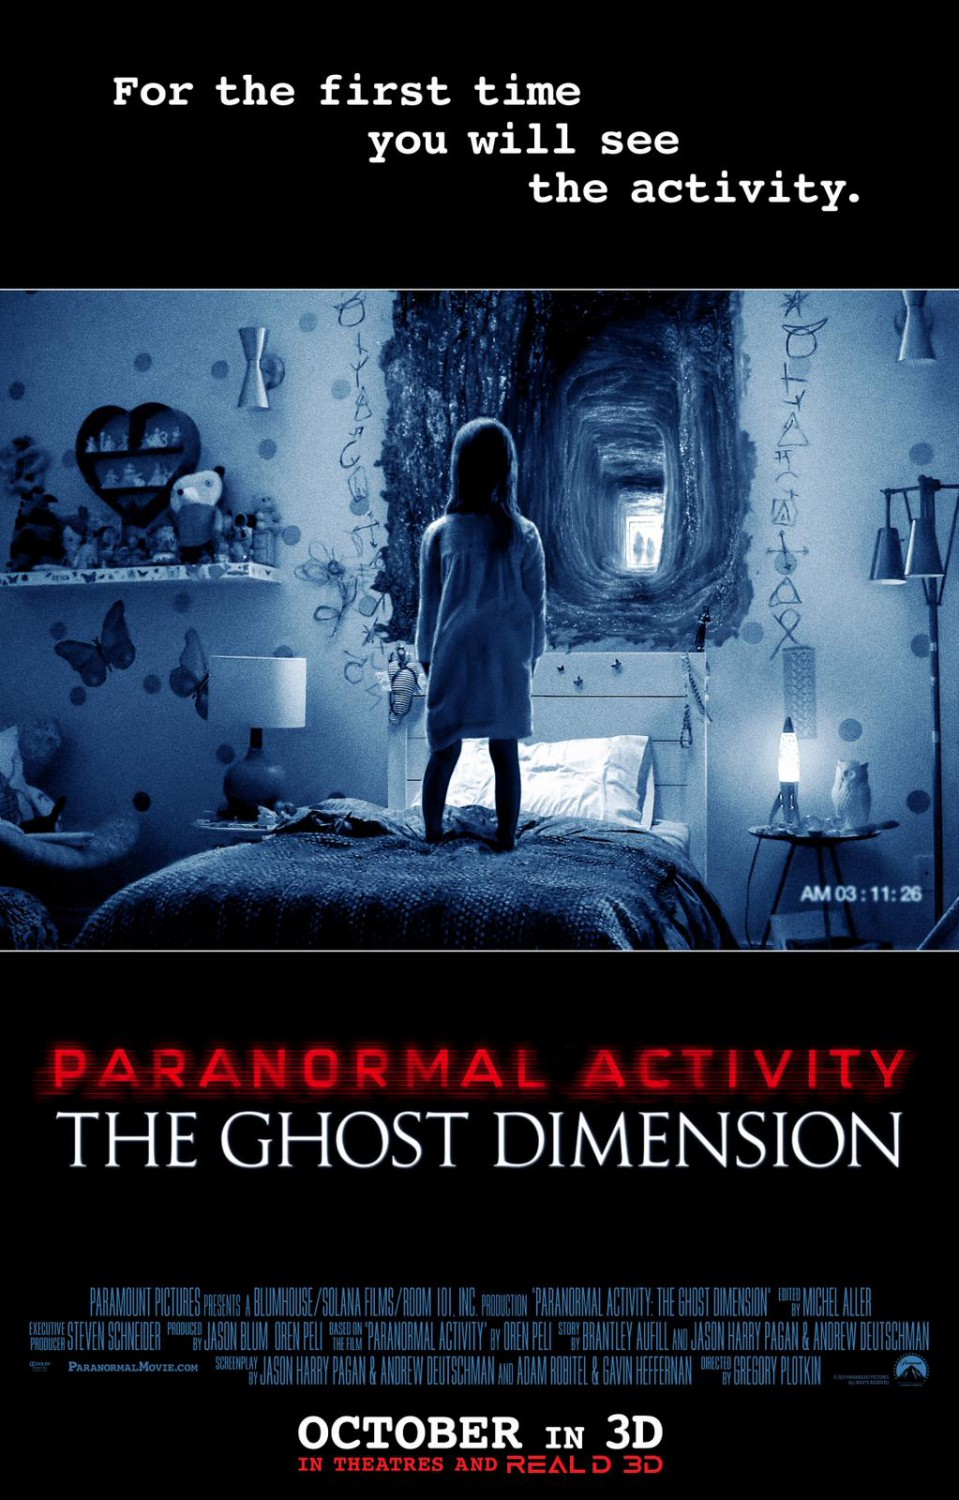 12 - Paranormal Activity The Ghost Dimension